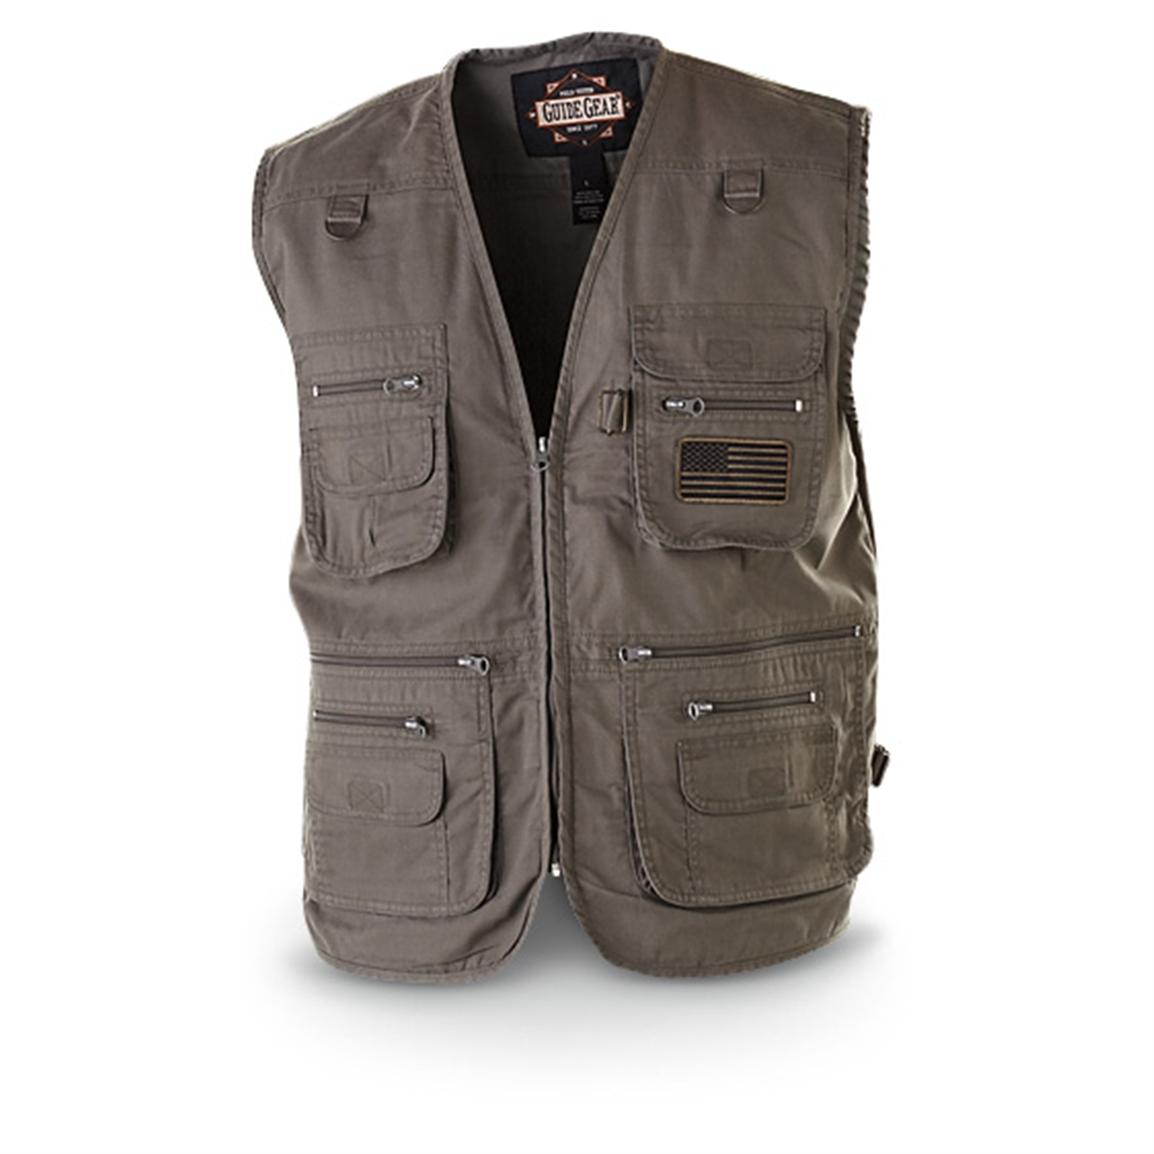 Guide Gear Men's Concealment Vest, Olive Drab